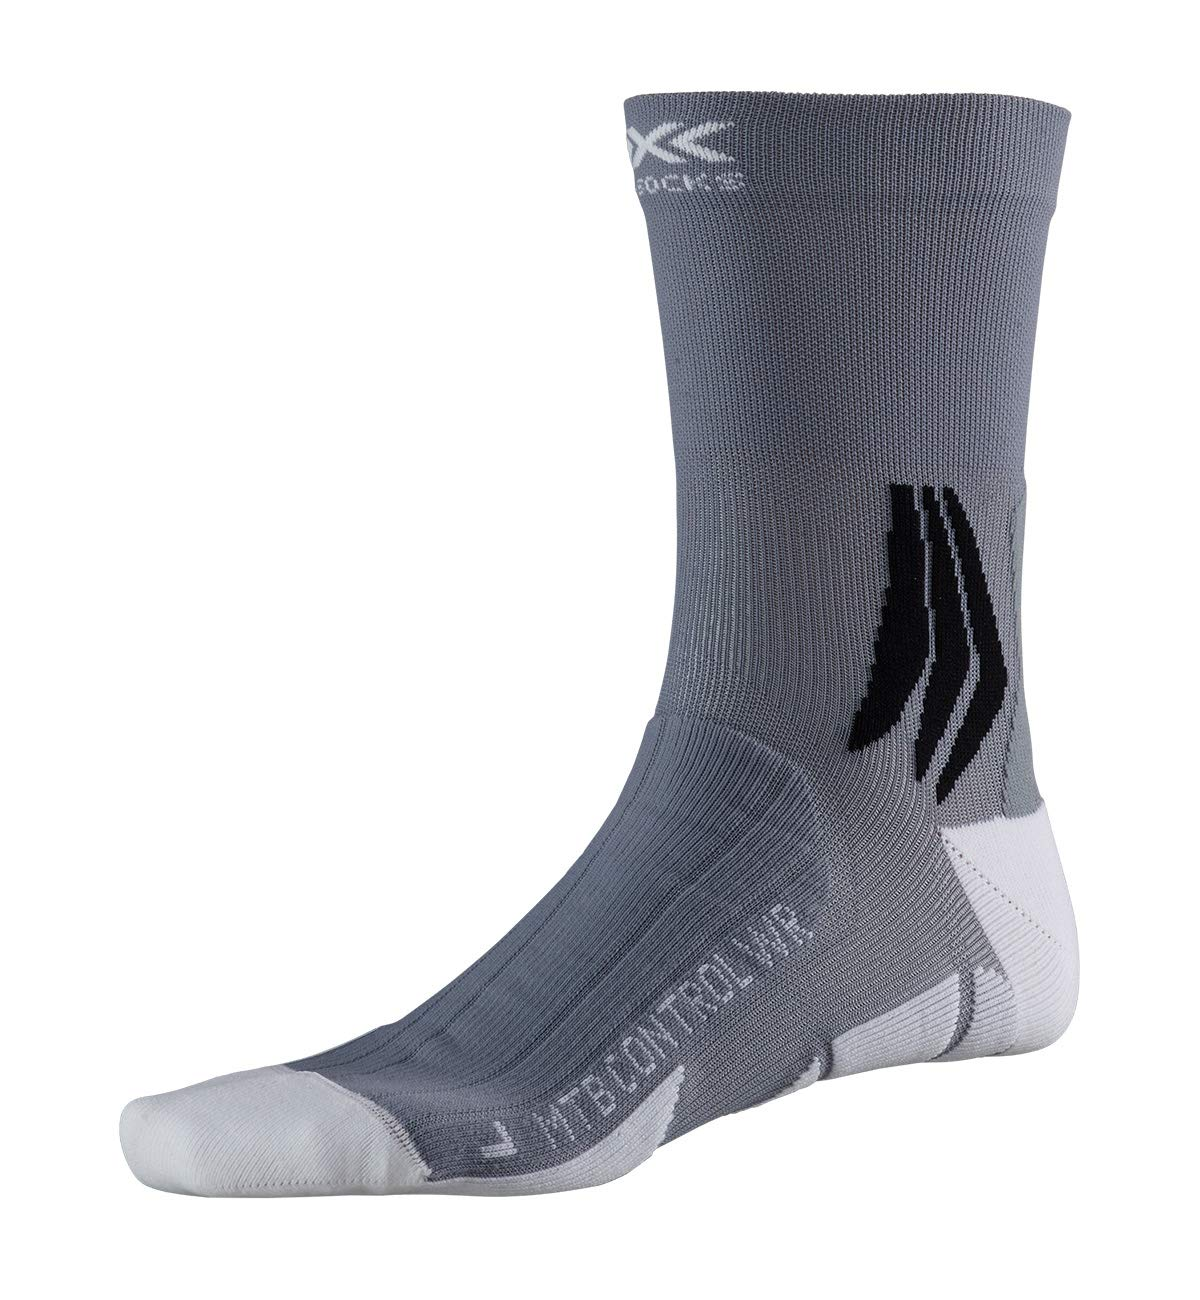 X-Socks Socks Mountain Bike Control Water Resistant, Arctic White/Dolomite Grey,